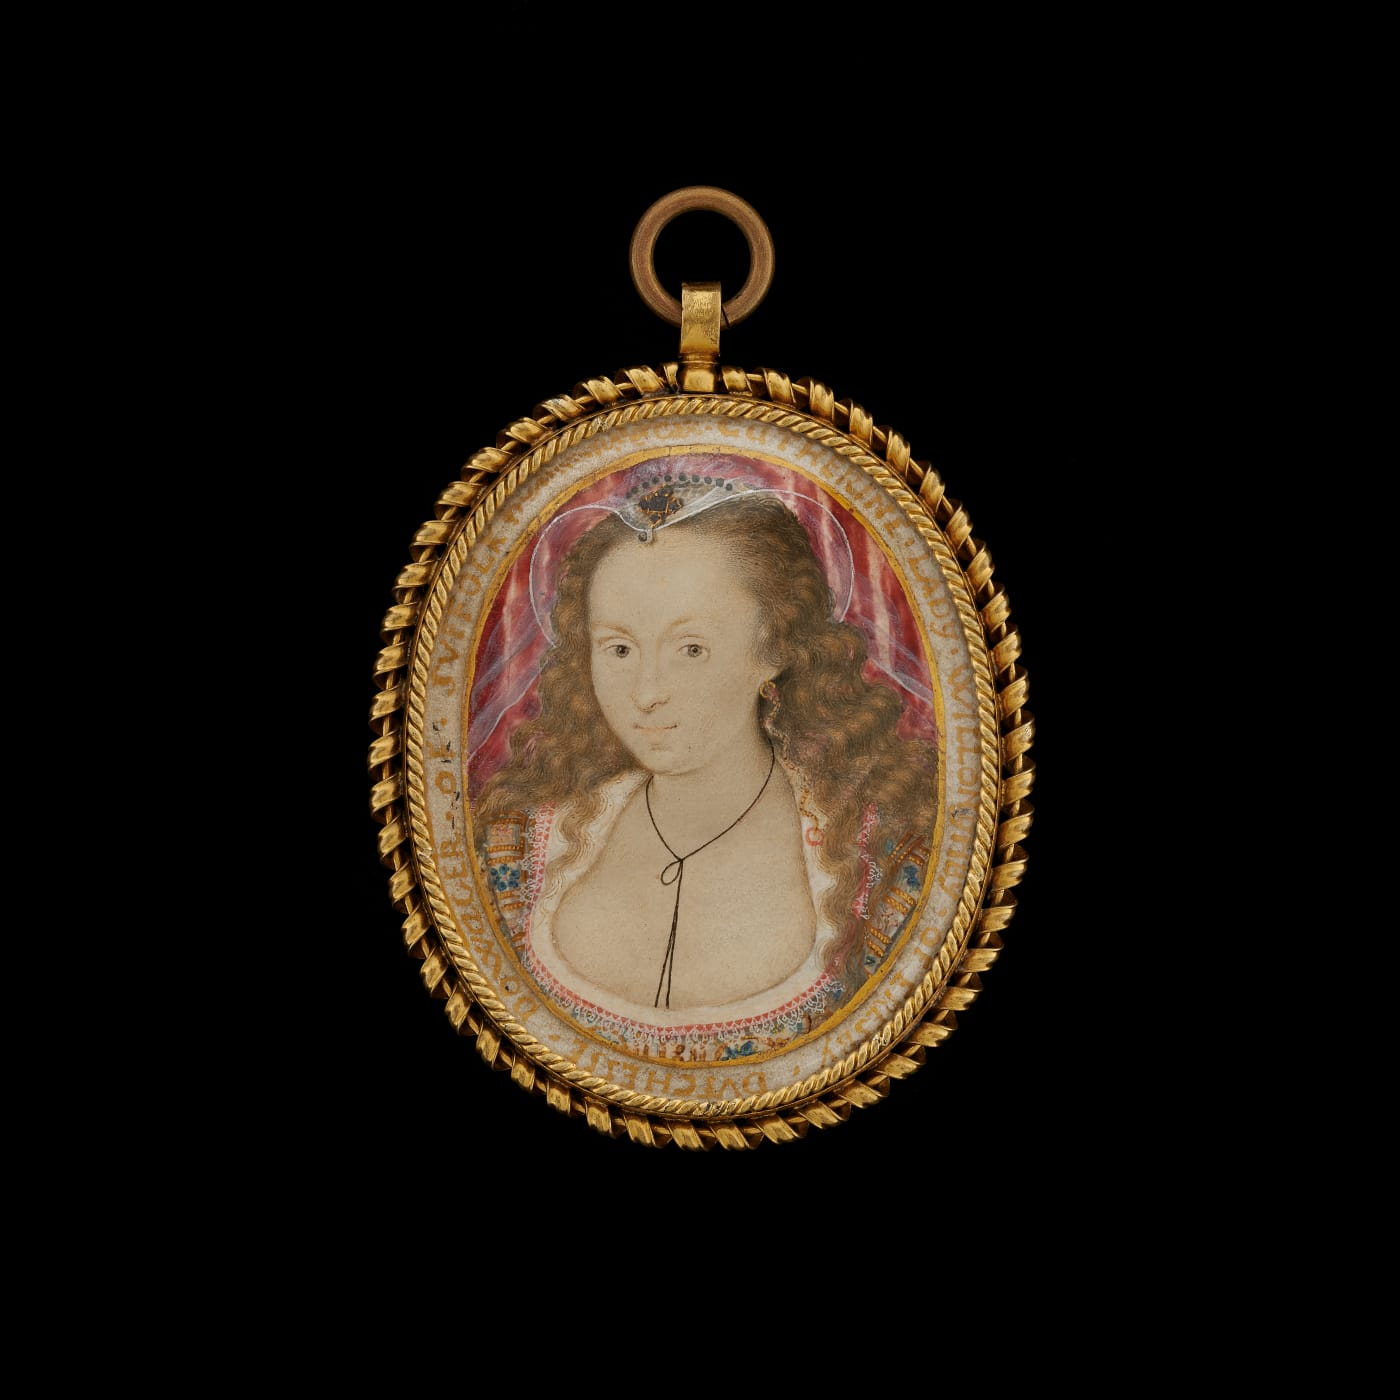 Watercolour on velum, portrait miniature by Isaac Oliver, presenting a young woman with her hair worn loose, in a low cut dress and veil.